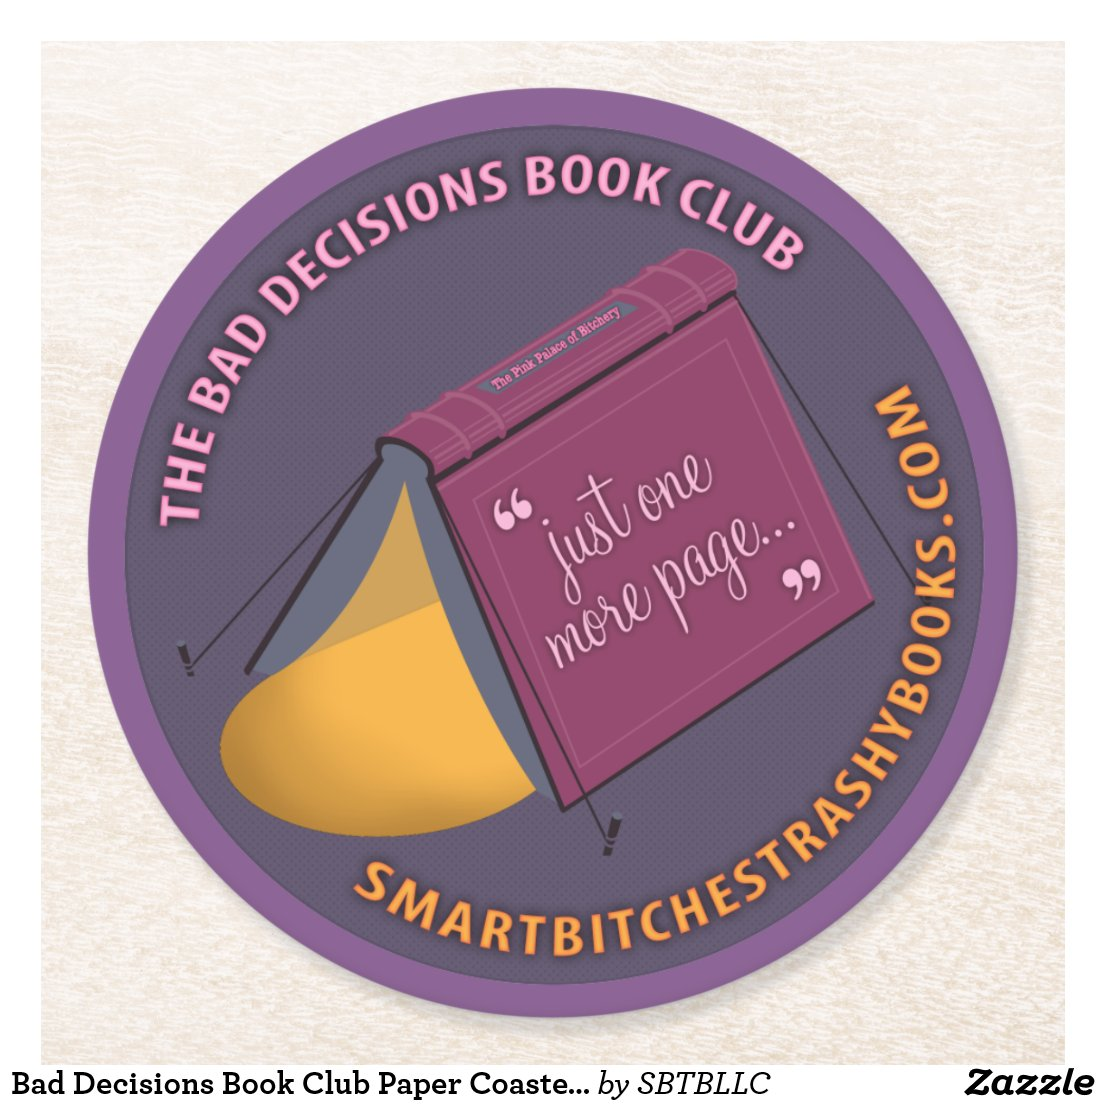 Bad Decisions Book Club Paper Coasters